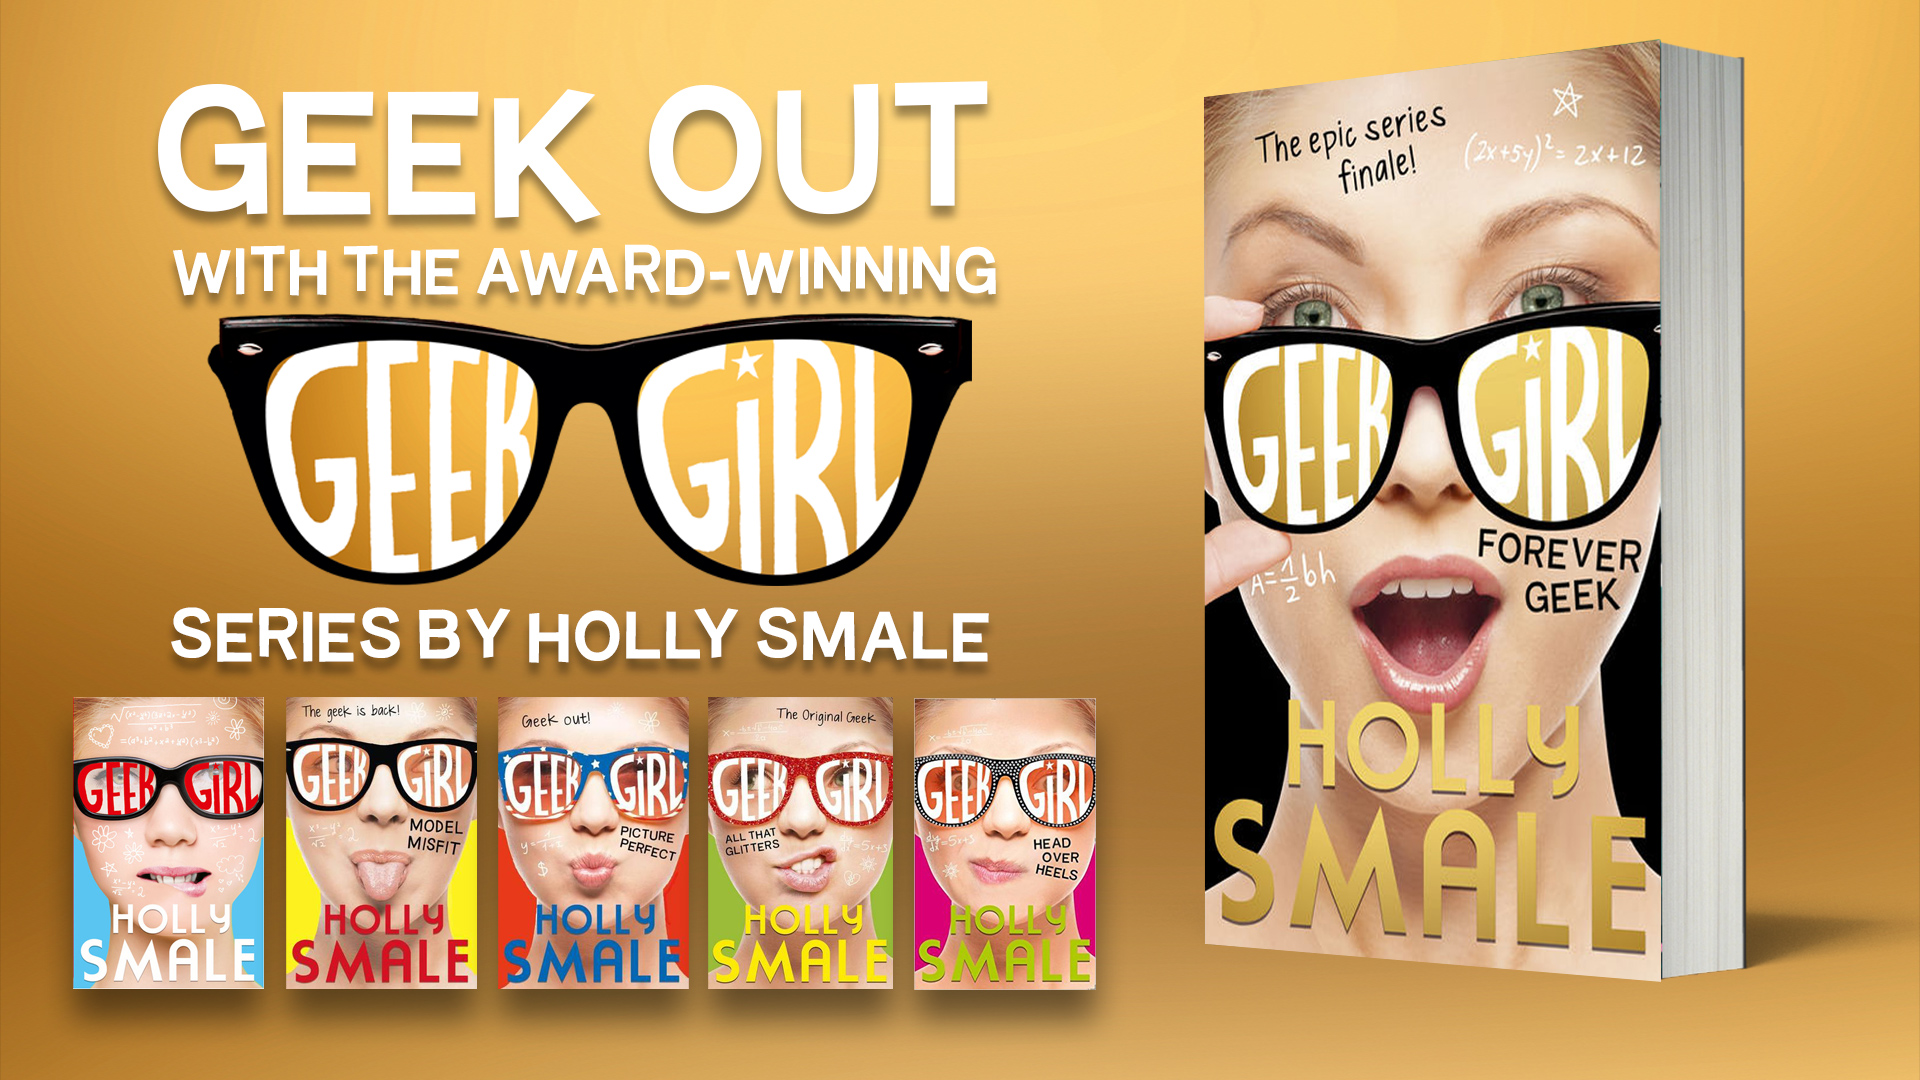 Geek Girl book series - with new book Forever Geek - Geek Girl Competition